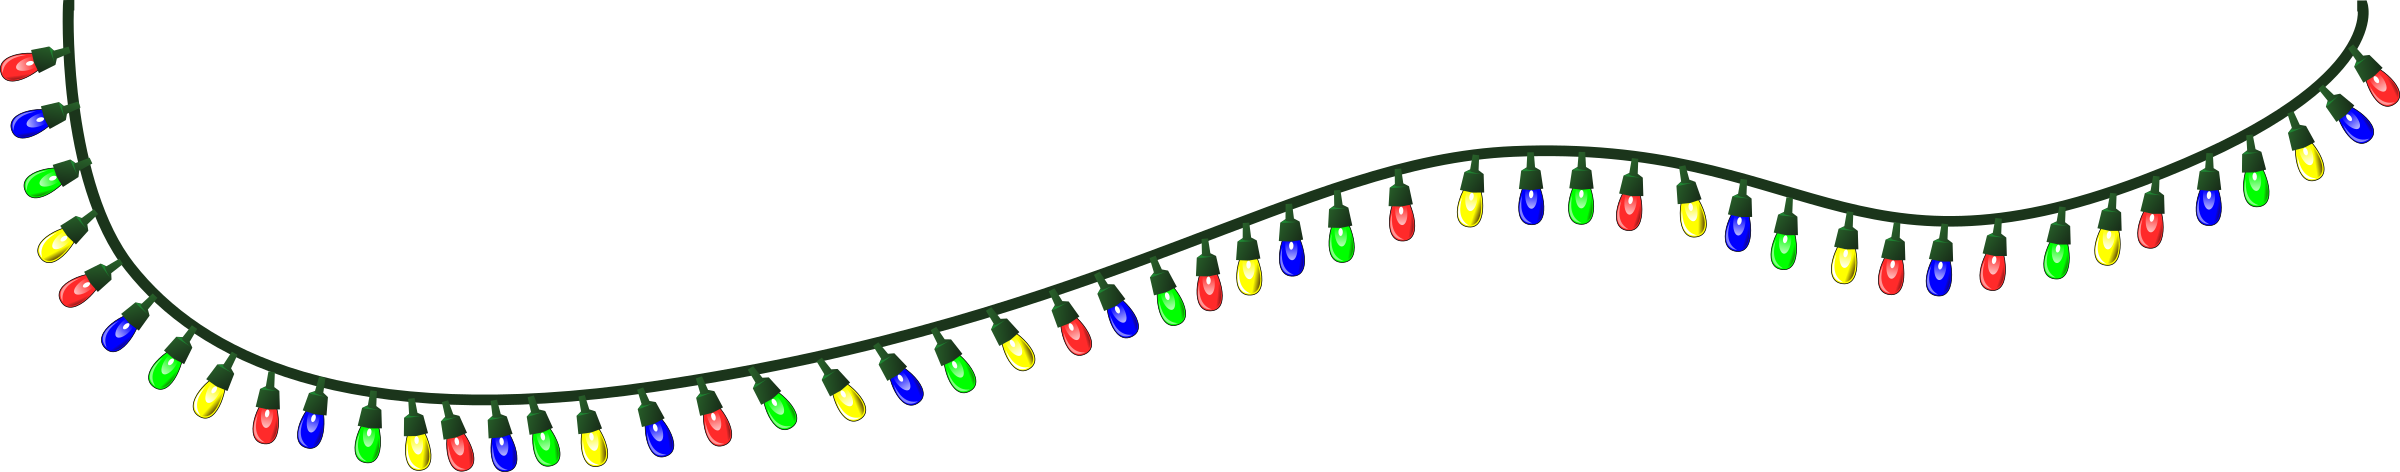 Colored String Cliparts.